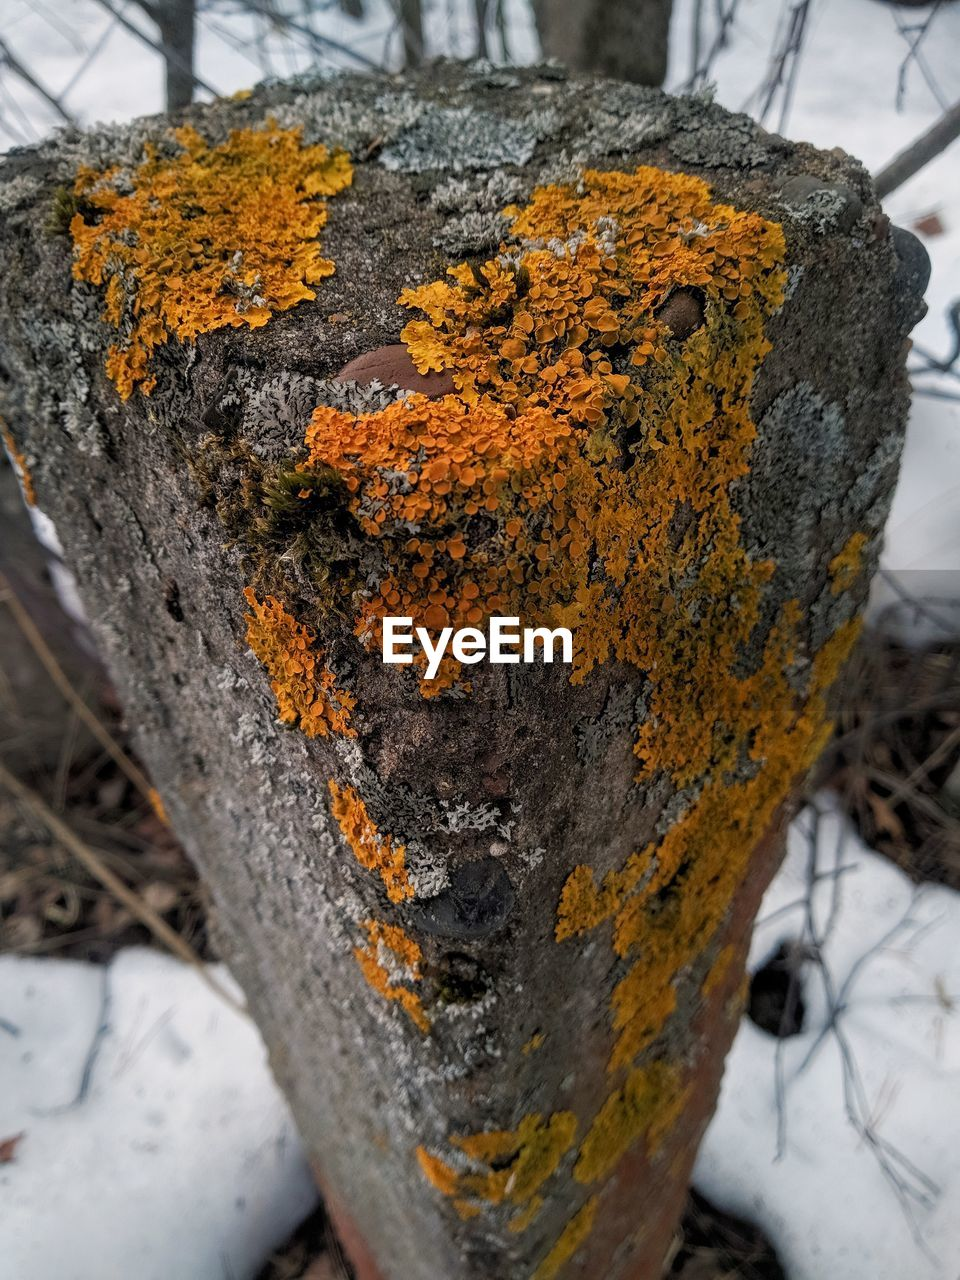 close-up, tree trunk, trunk, day, focus on foreground, no people, snow, winter, cold temperature, tree, lichen, plant, nature, outdoors, textured, orange color, fungus, rough, beauty in nature, bark